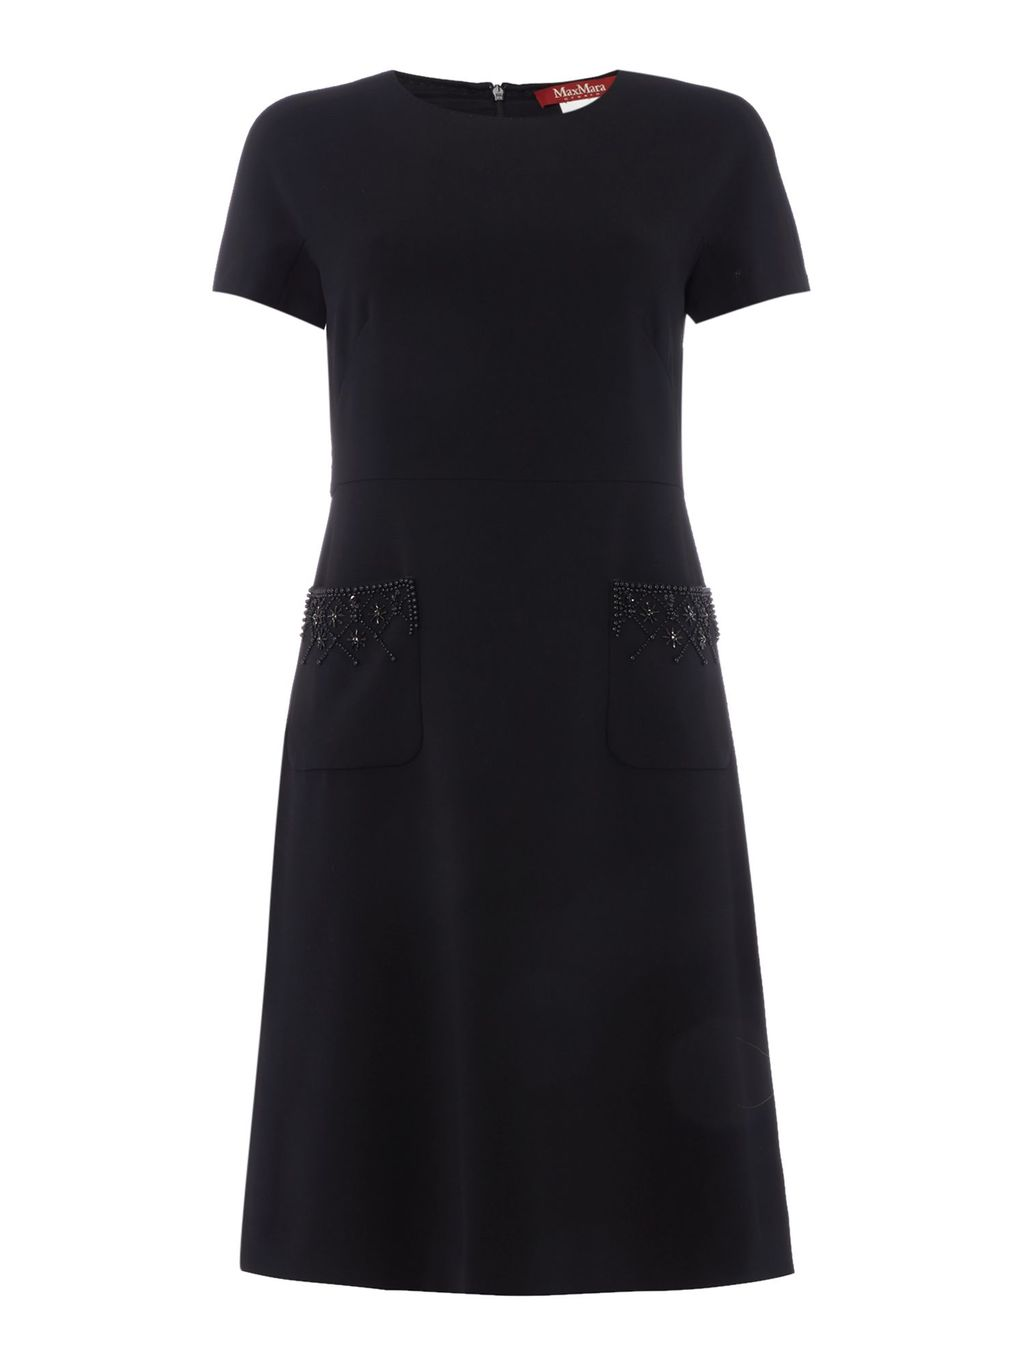 Lulu Short Sleeve Dress With Pockets, Black - style: shift; neckline: round neck; pattern: plain; predominant colour: black; occasions: casual, evening, creative work; length: just above the knee; fit: soft a-line; fibres: polyester/polyamide - mix; sleeve length: short sleeve; sleeve style: standard; pattern type: fabric; texture group: jersey - stretchy/drapey; season: s/s 2016; wardrobe: basic